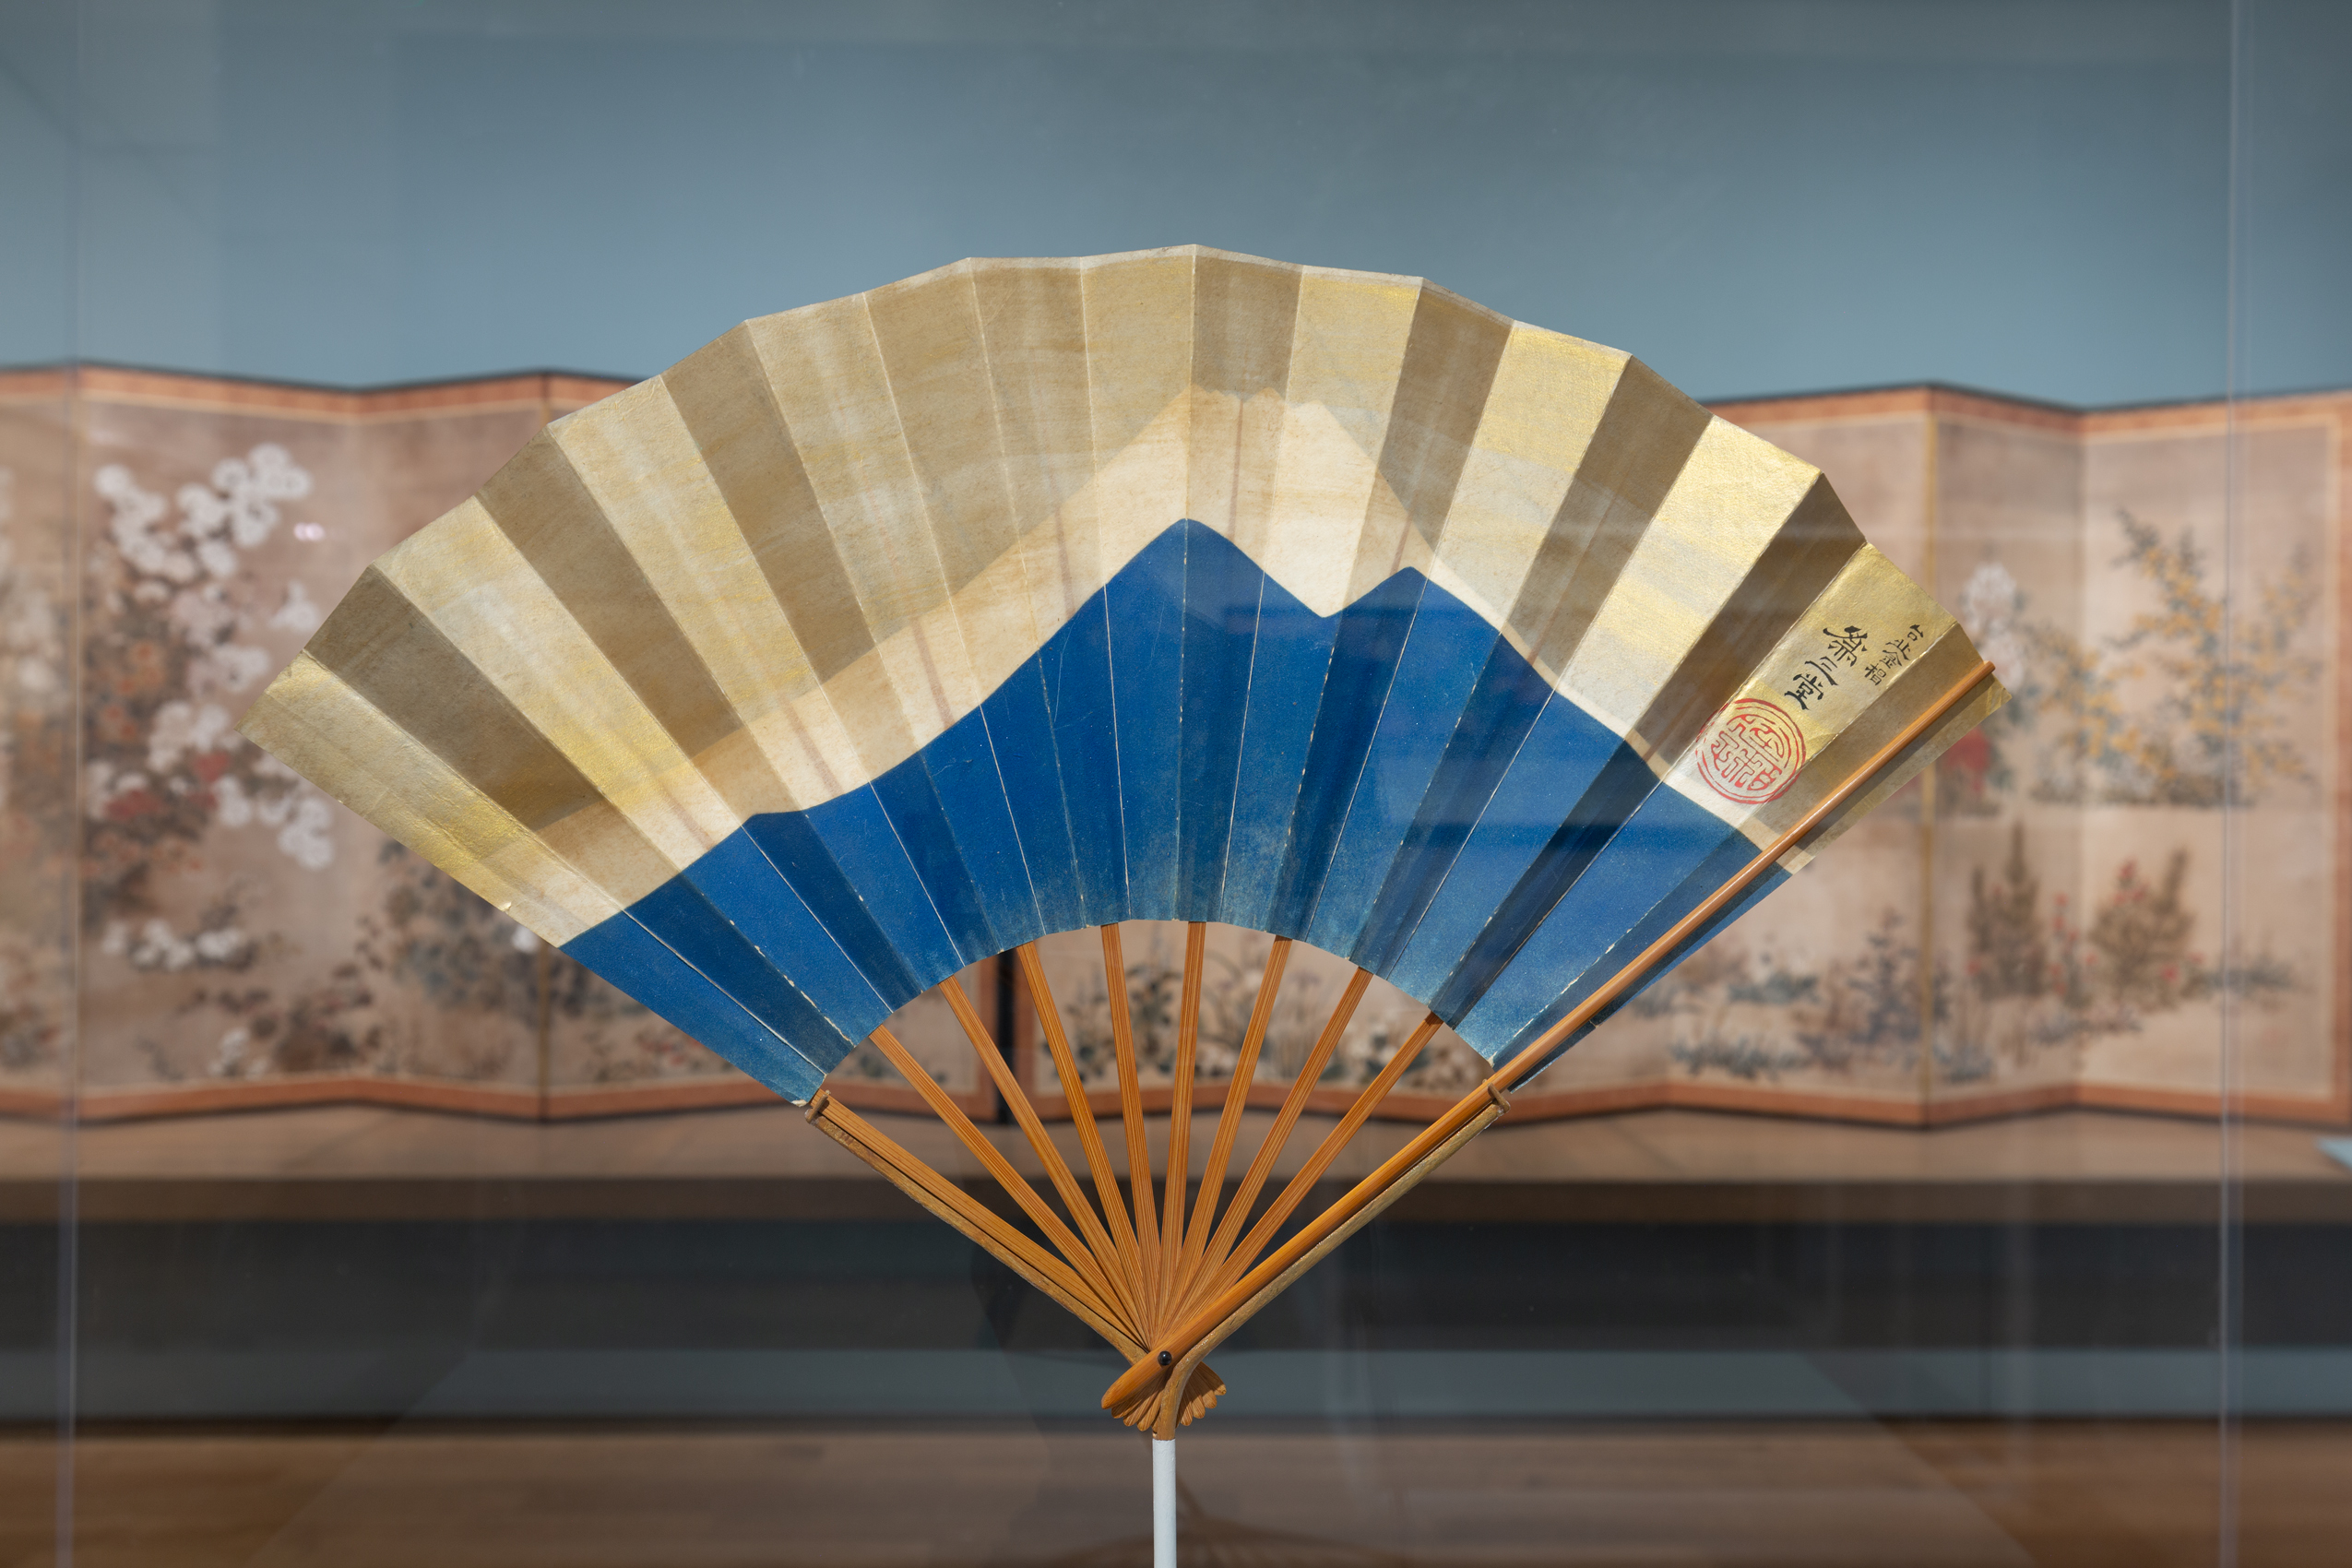 A paper fan is held upright by thin wooden supports on a display in a gallery. The fan features a geometric depiction of a blue mountain with a white-topped peak. The space above the peak is gold. A black and red inscription is on the right side of the fan. A floral folding screen can be seen in the background.